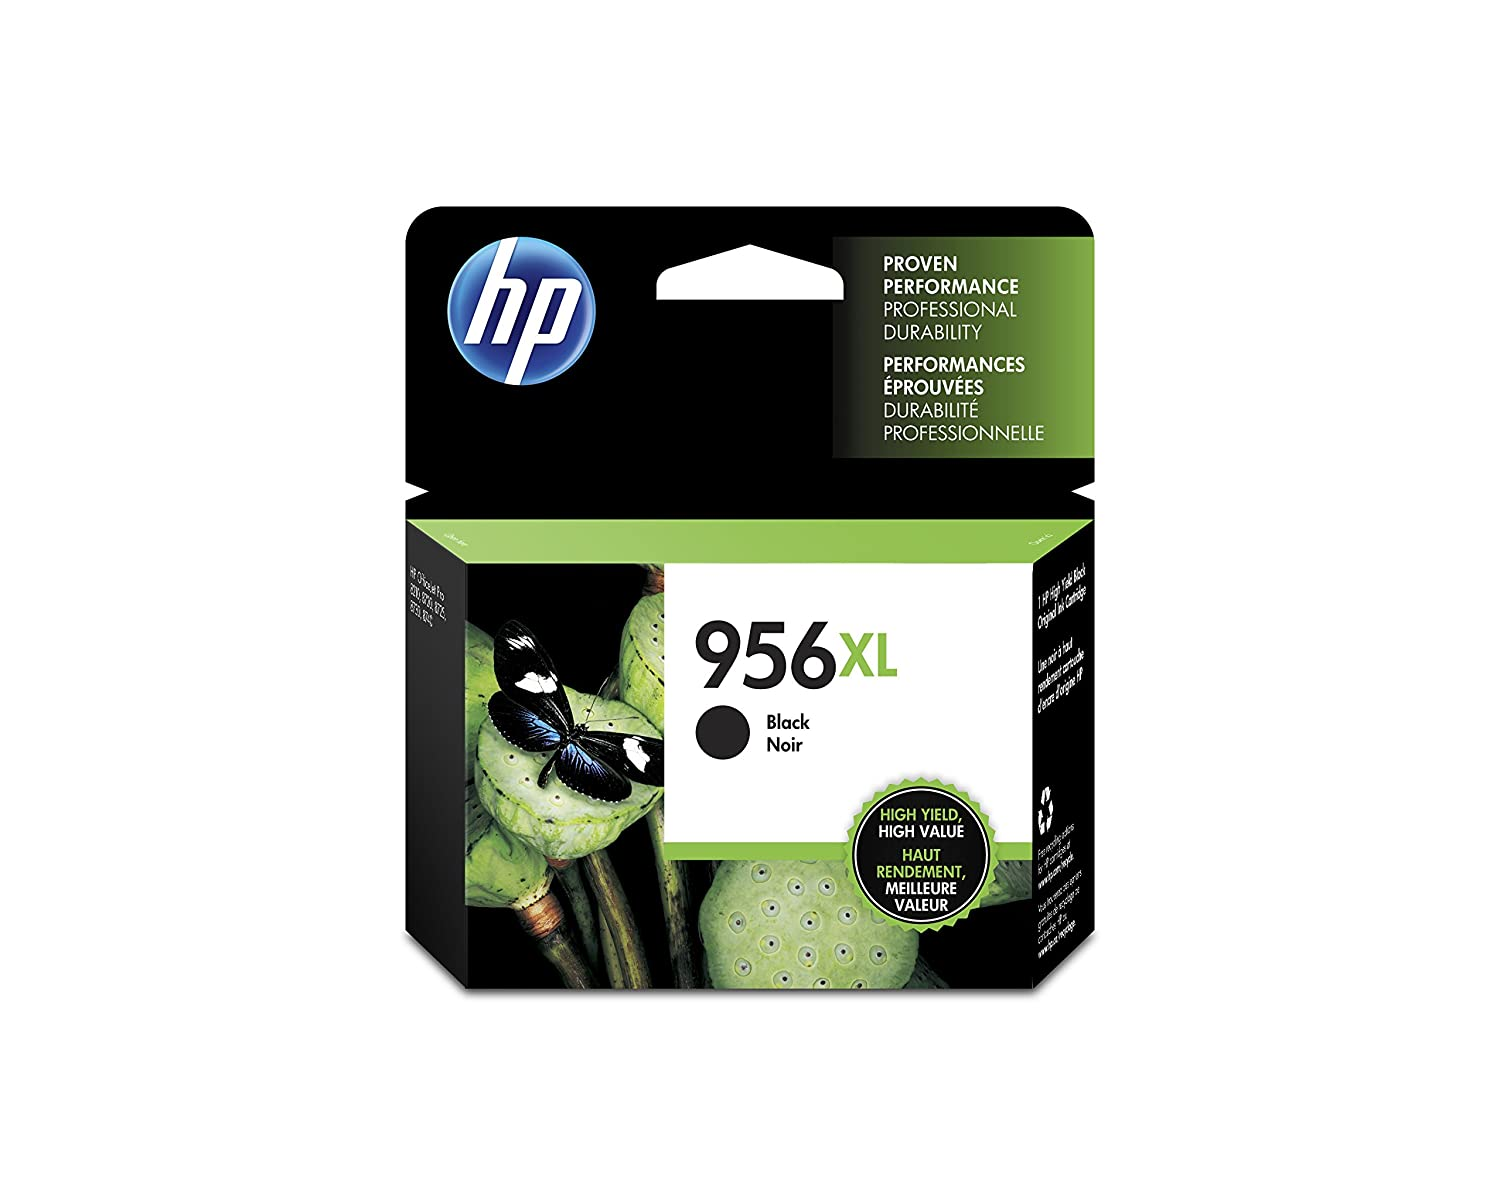 HP 956XL Black Ink Cartridge (L0R39AN)